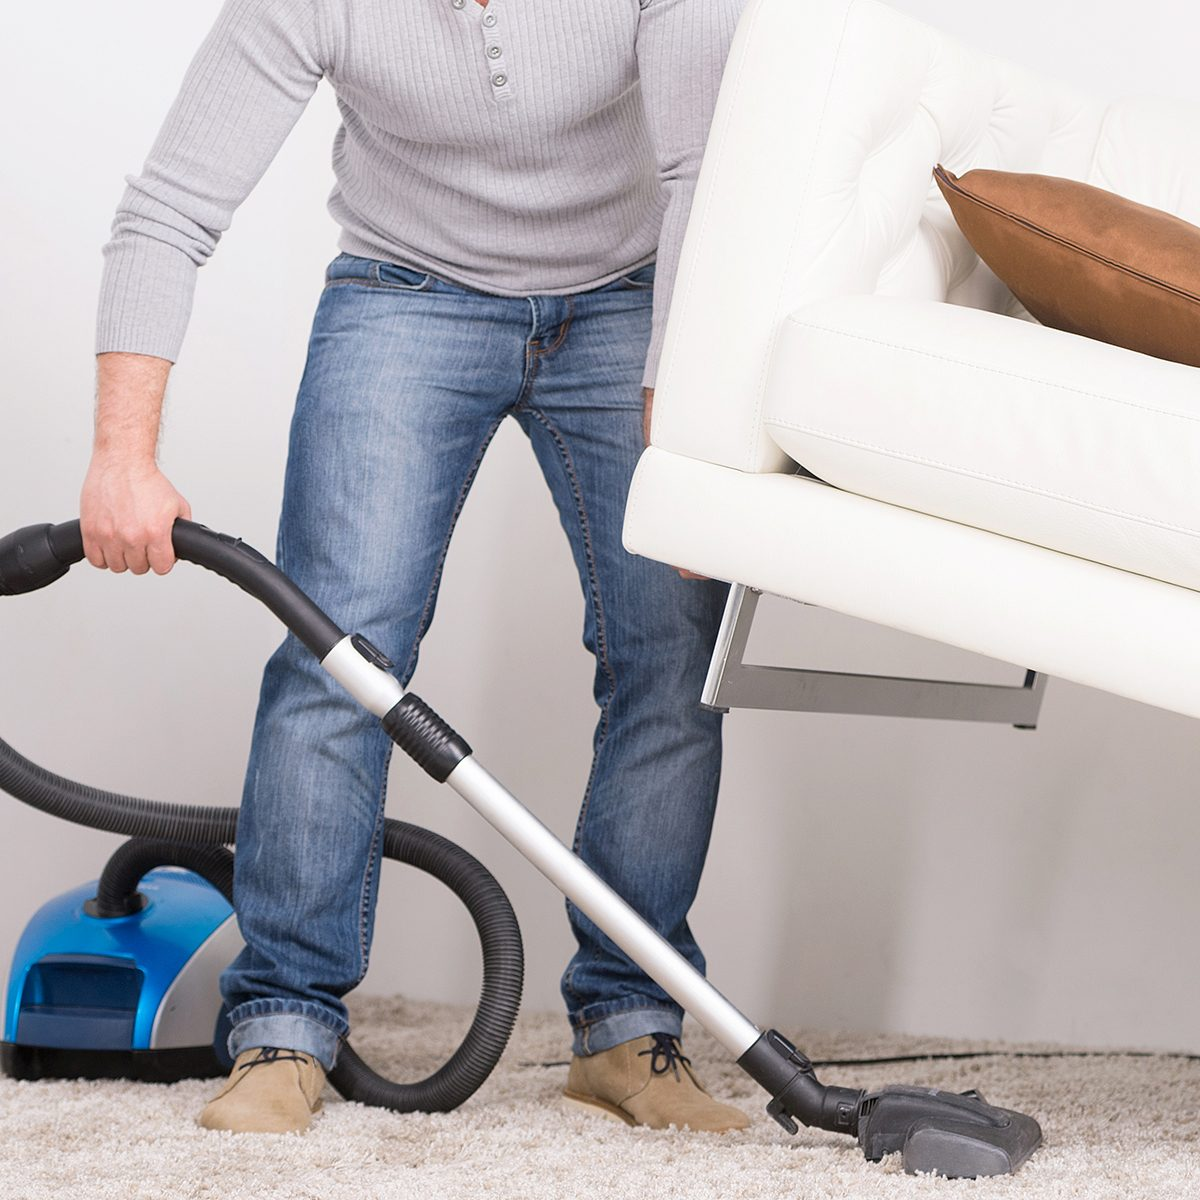 man does house work with vacuum cleaner. Men lifted sofa in living room, vacuum cleaning. ; Shutterstock ID 216002761; Job (TFH, TOH, RD, BNB, CWM, CM): TOH